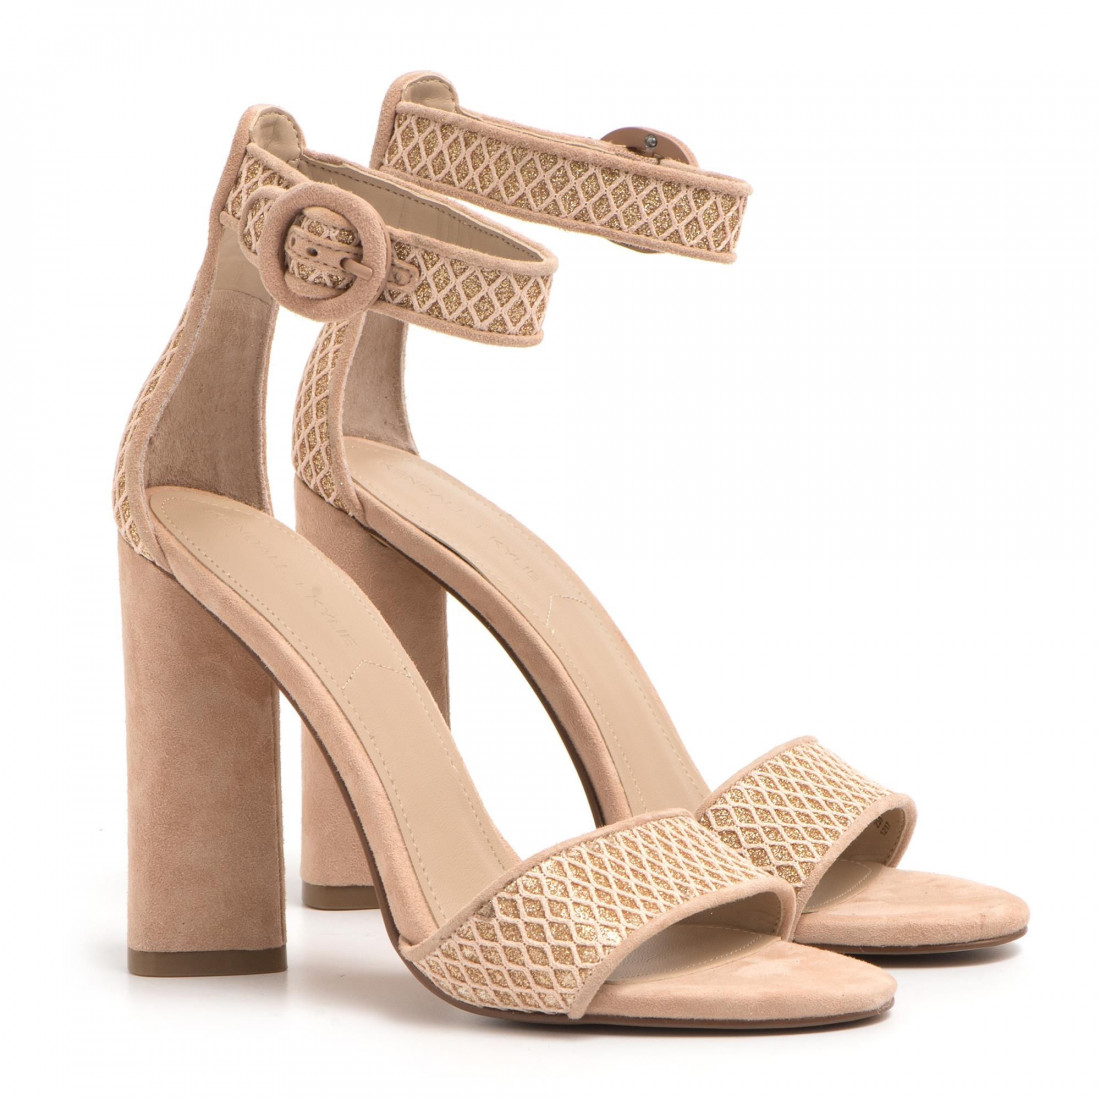 sandals woman kendall kylie gisellenude escort 2931